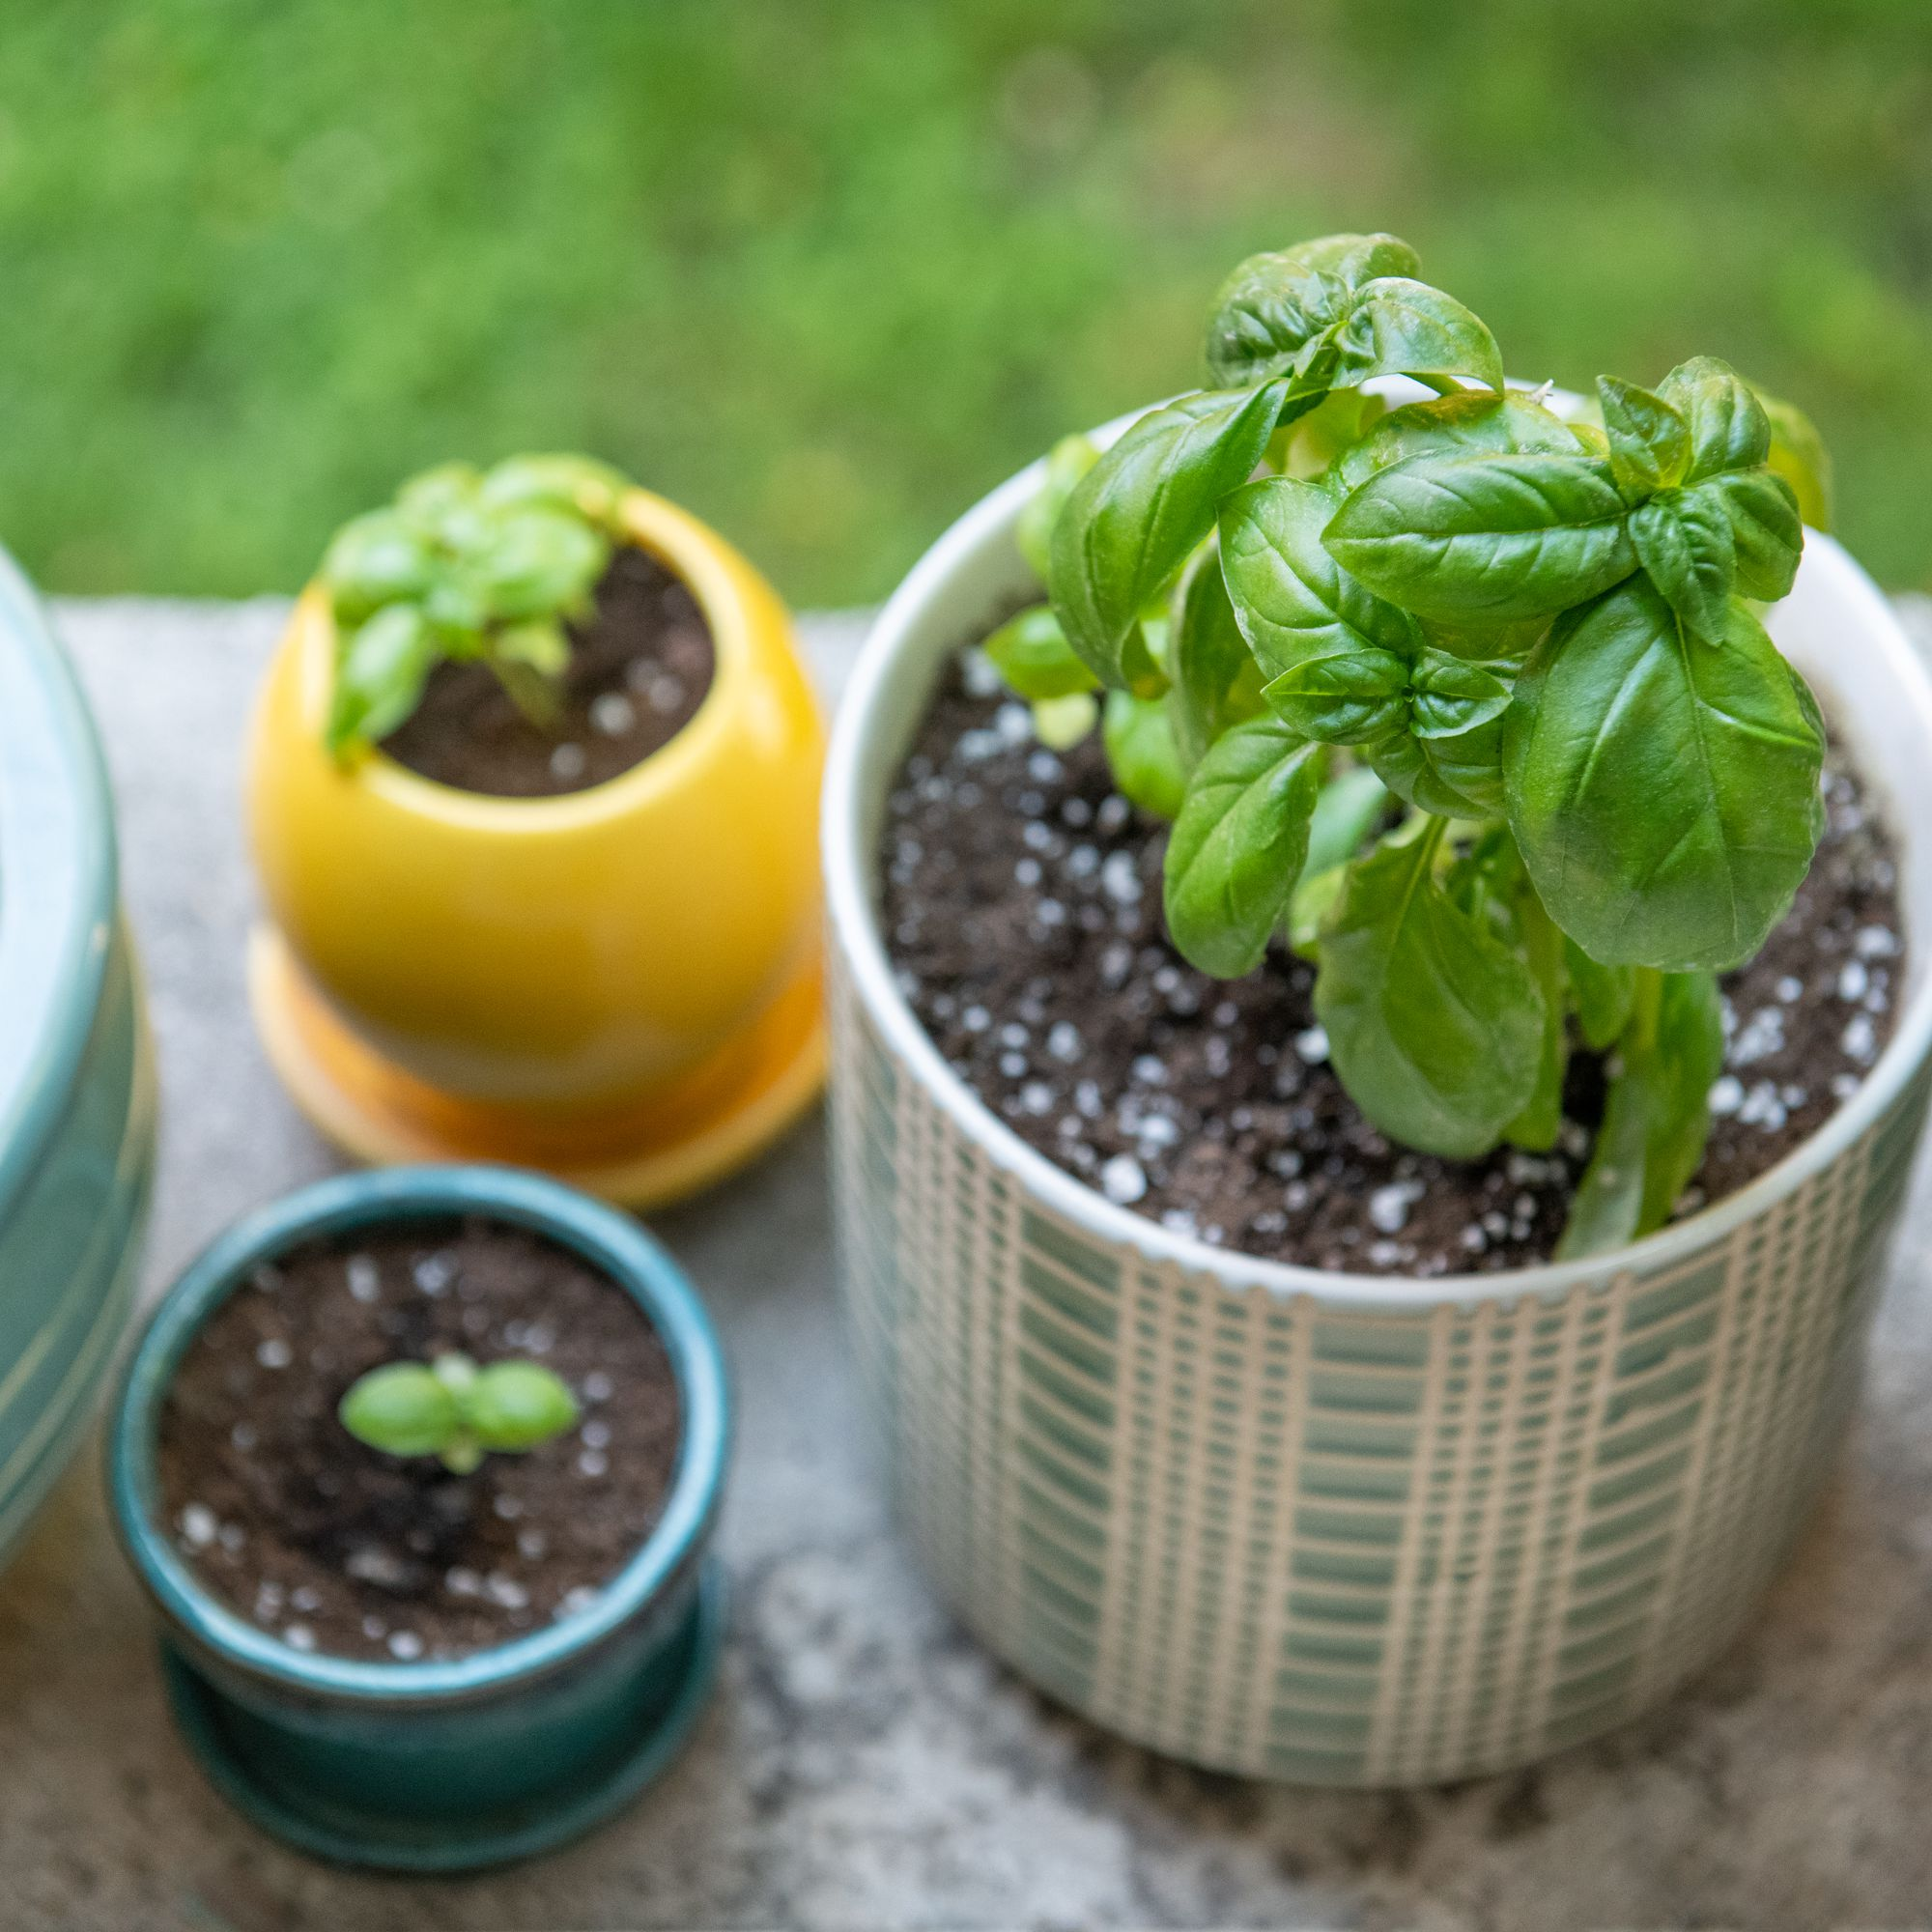 Basil - Ornamental Plants as Mosquito Repellent